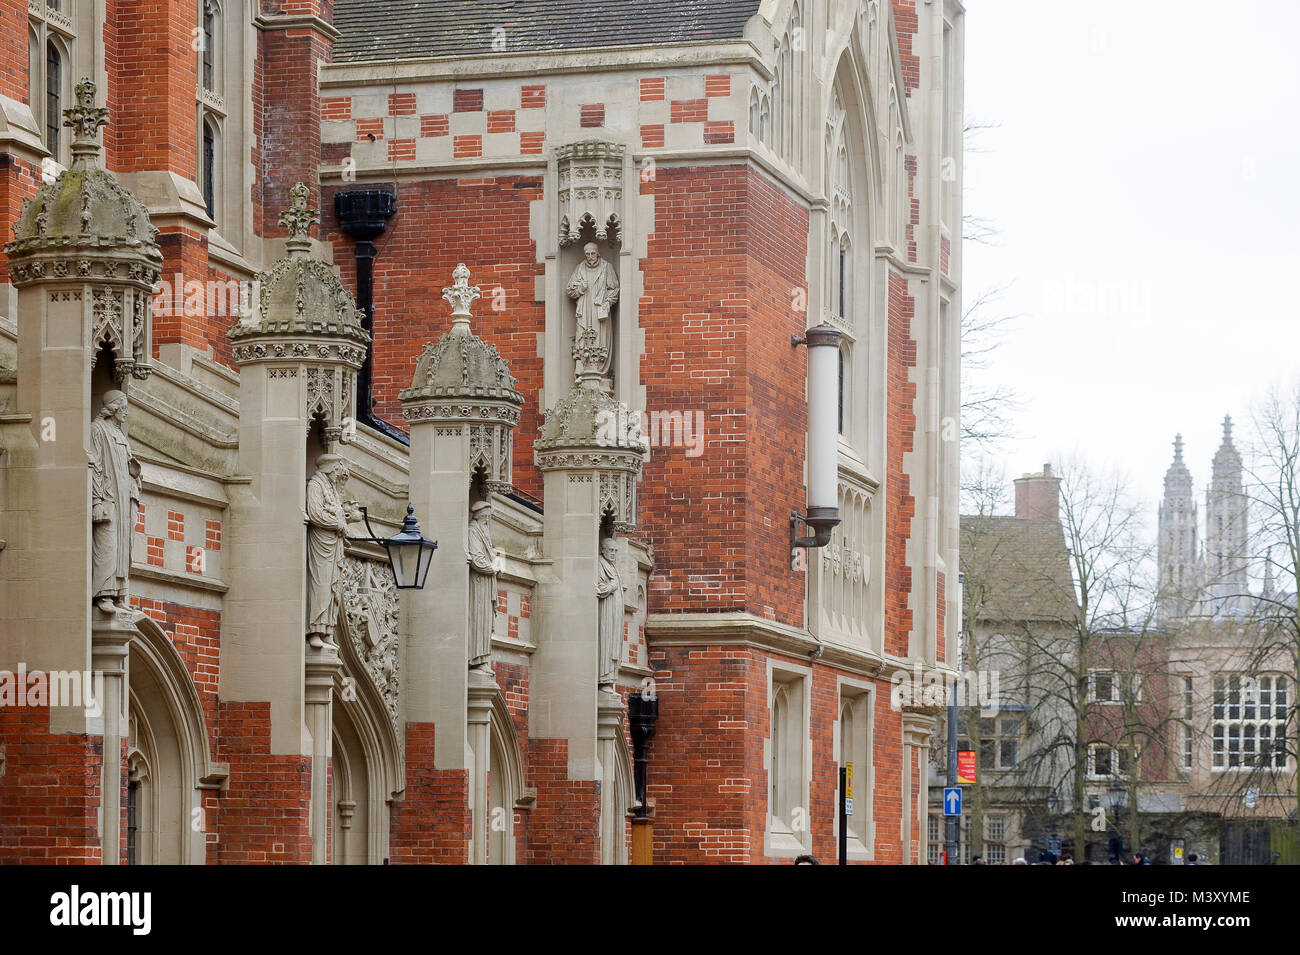 Old Divinity School of St John's College founded in 1511, University of Cambridge one of the oldest universities - Stock Image